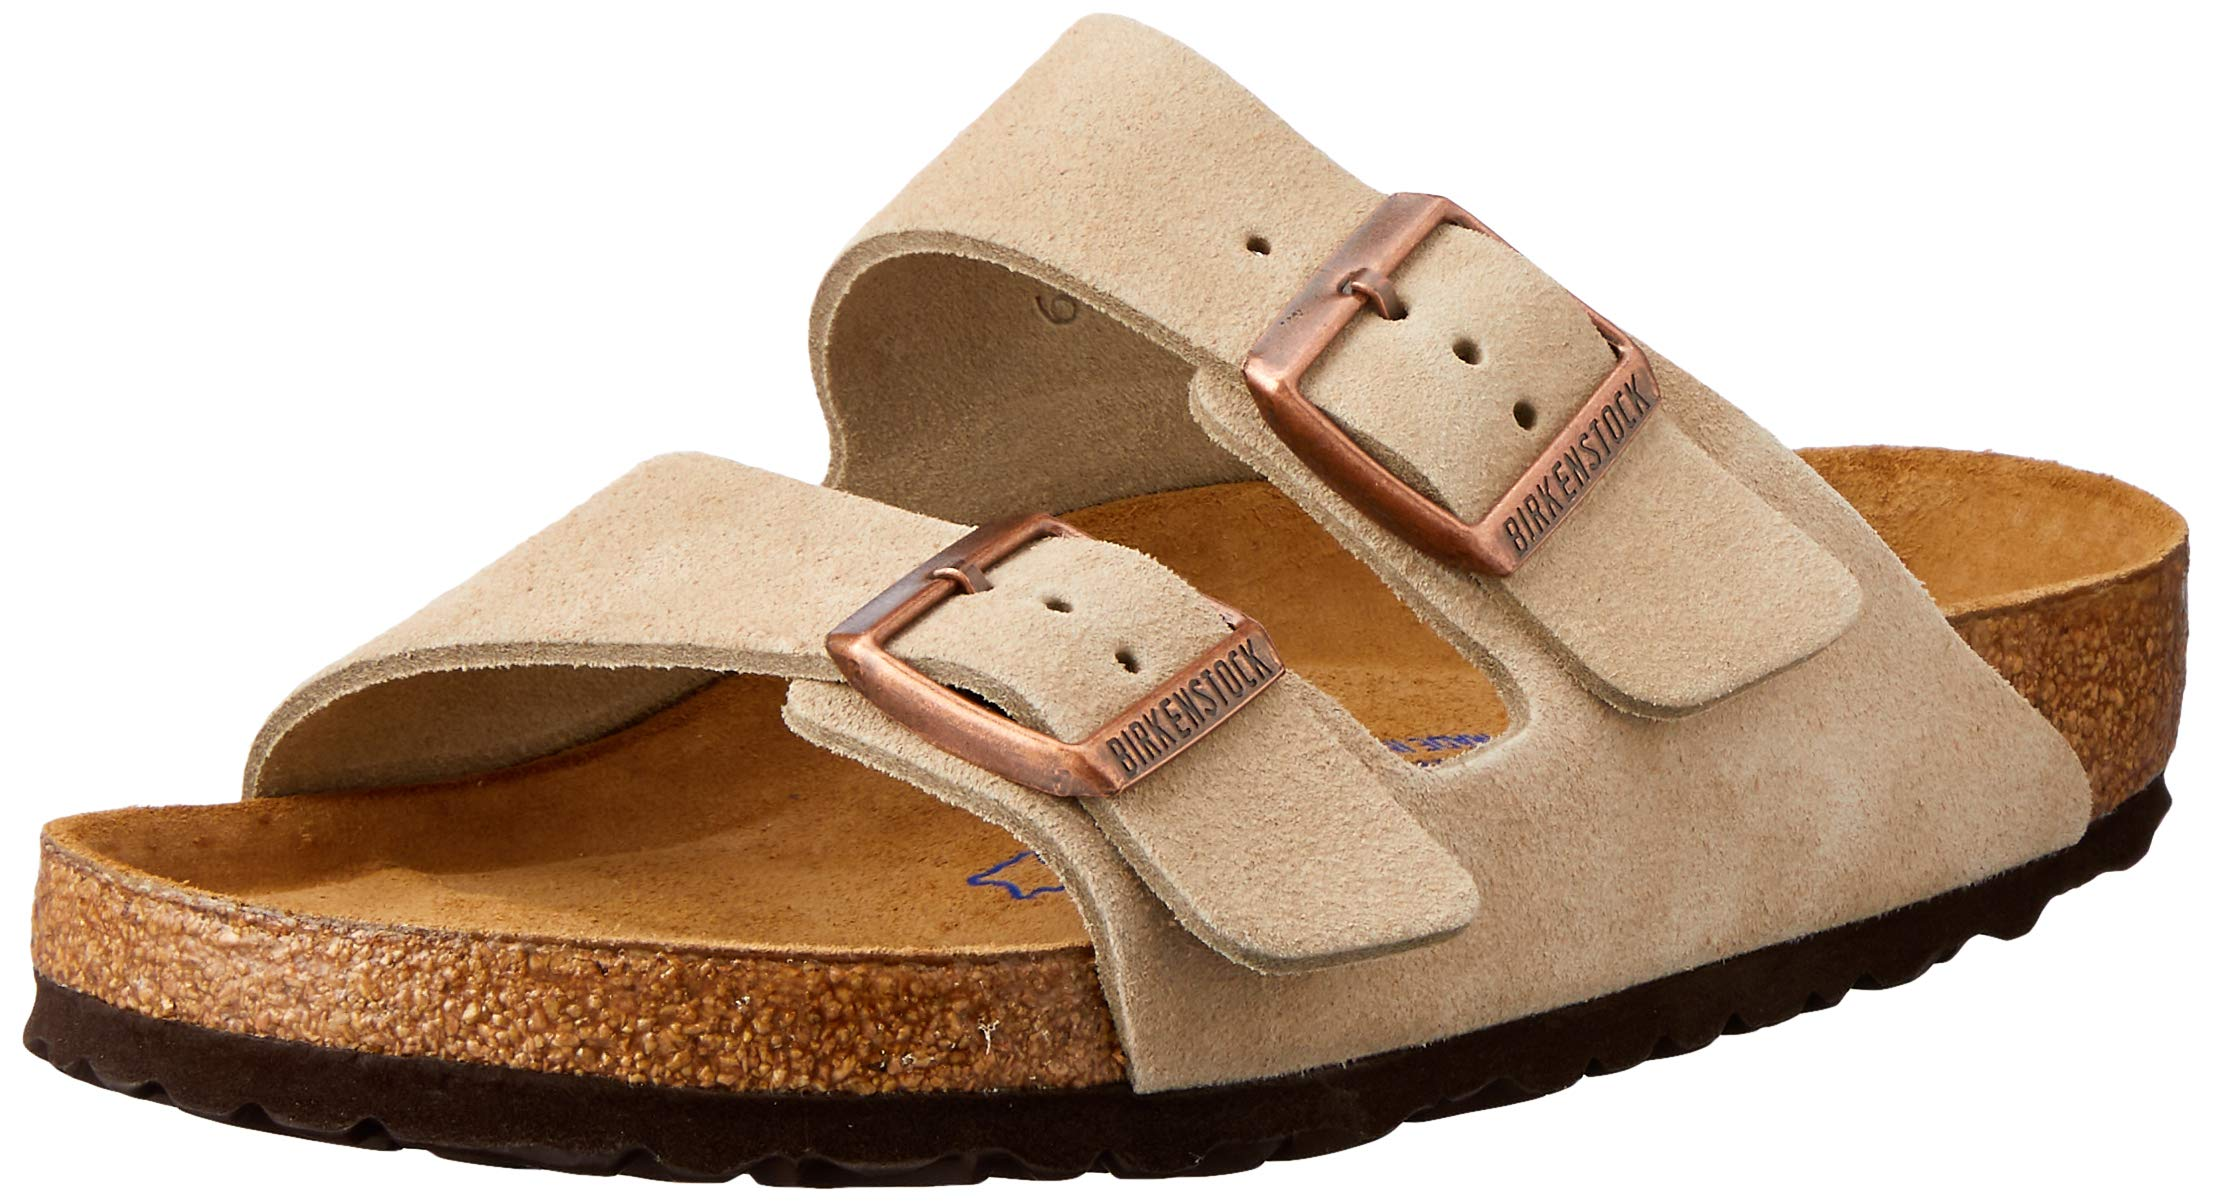 Birkenstock Arizona Suede Leather Sandals - Soft Footbed, Color:Taupe;Size:44 M EU